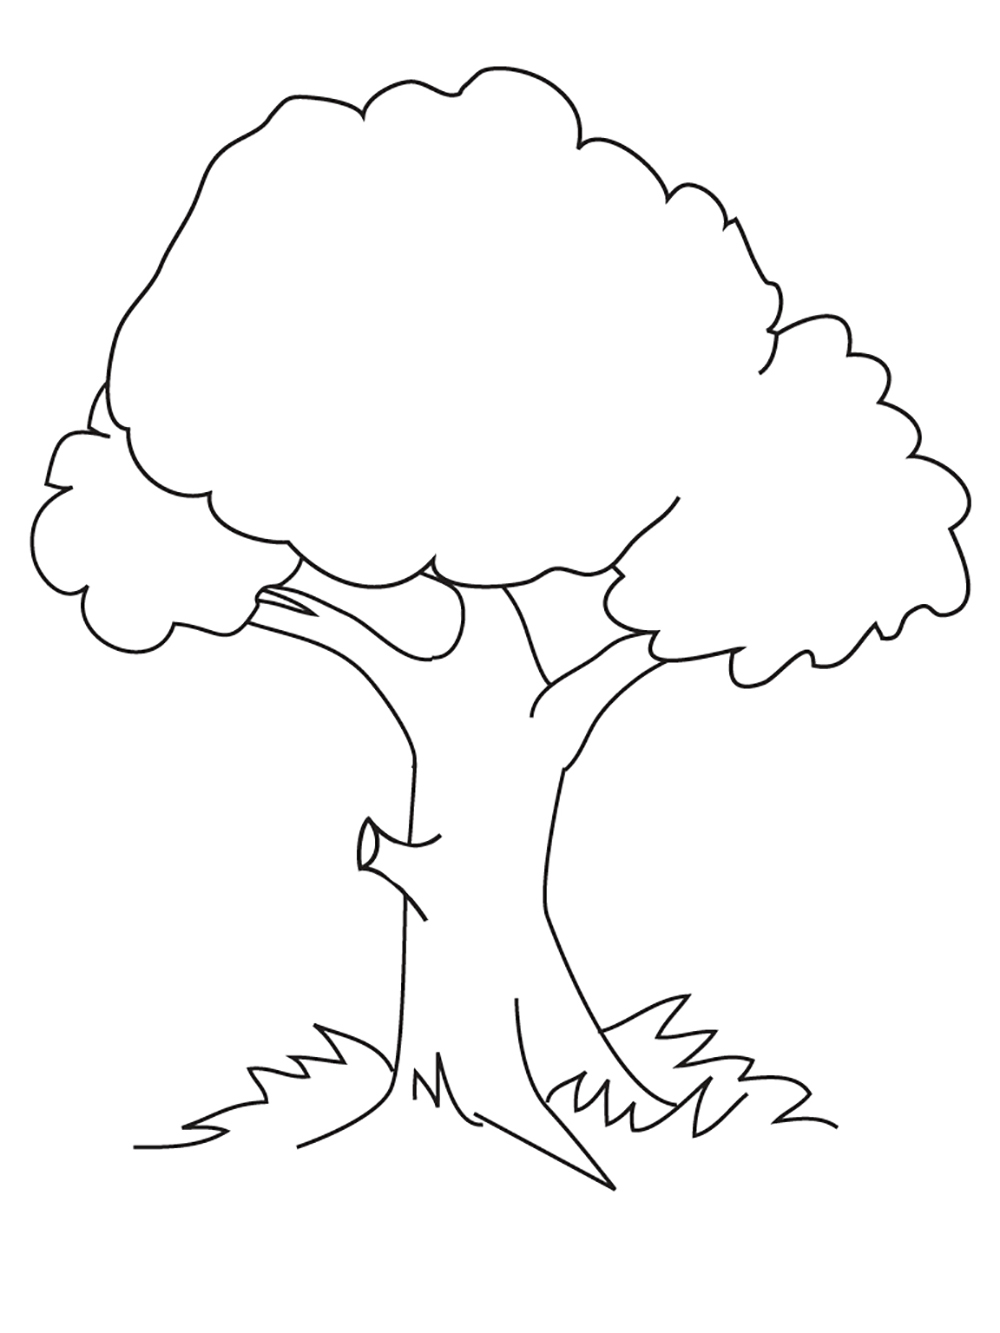 coloring trees free printable tree coloring pages for kids cool2bkids coloring trees 1 2